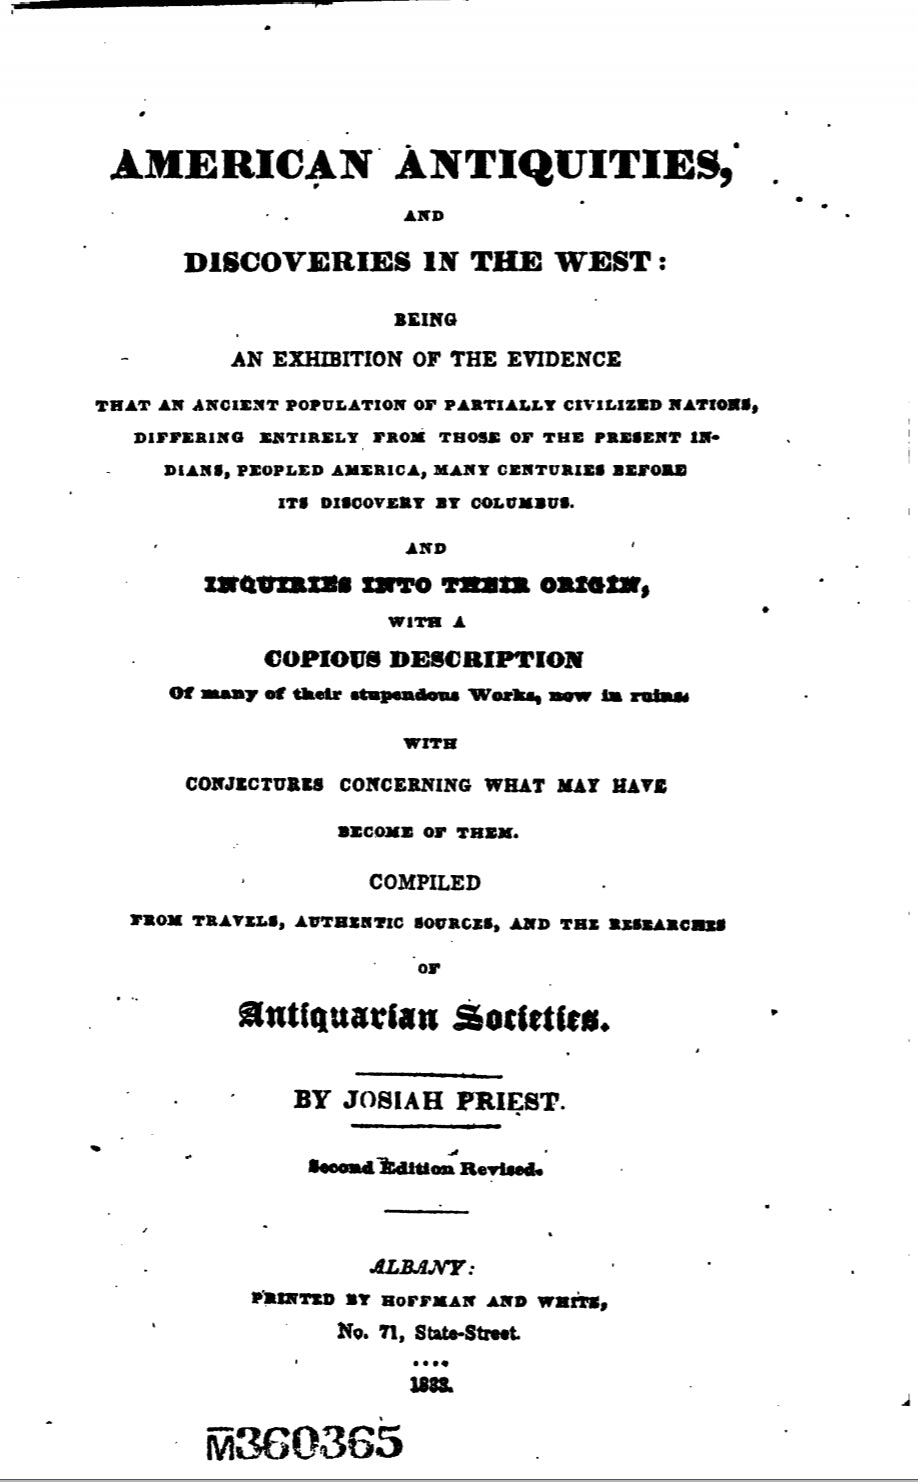 1833 American Antiquities and Discoveries in the West